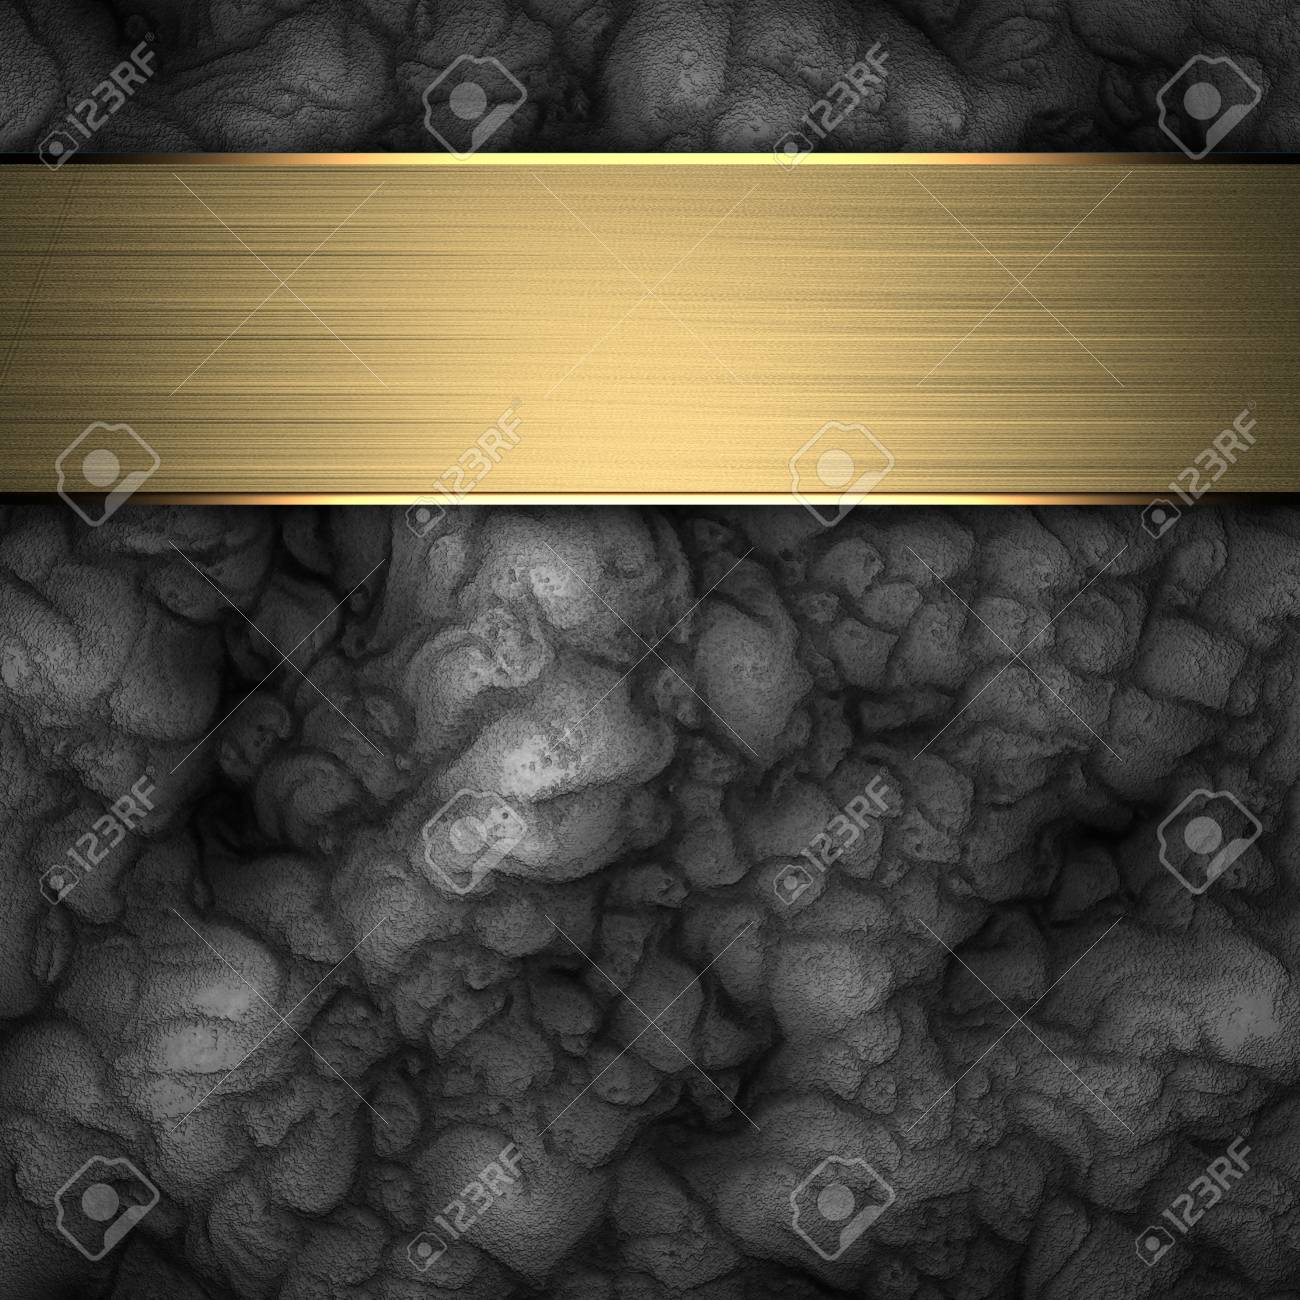 Black Background with gold plate Stock Photo - 14124791